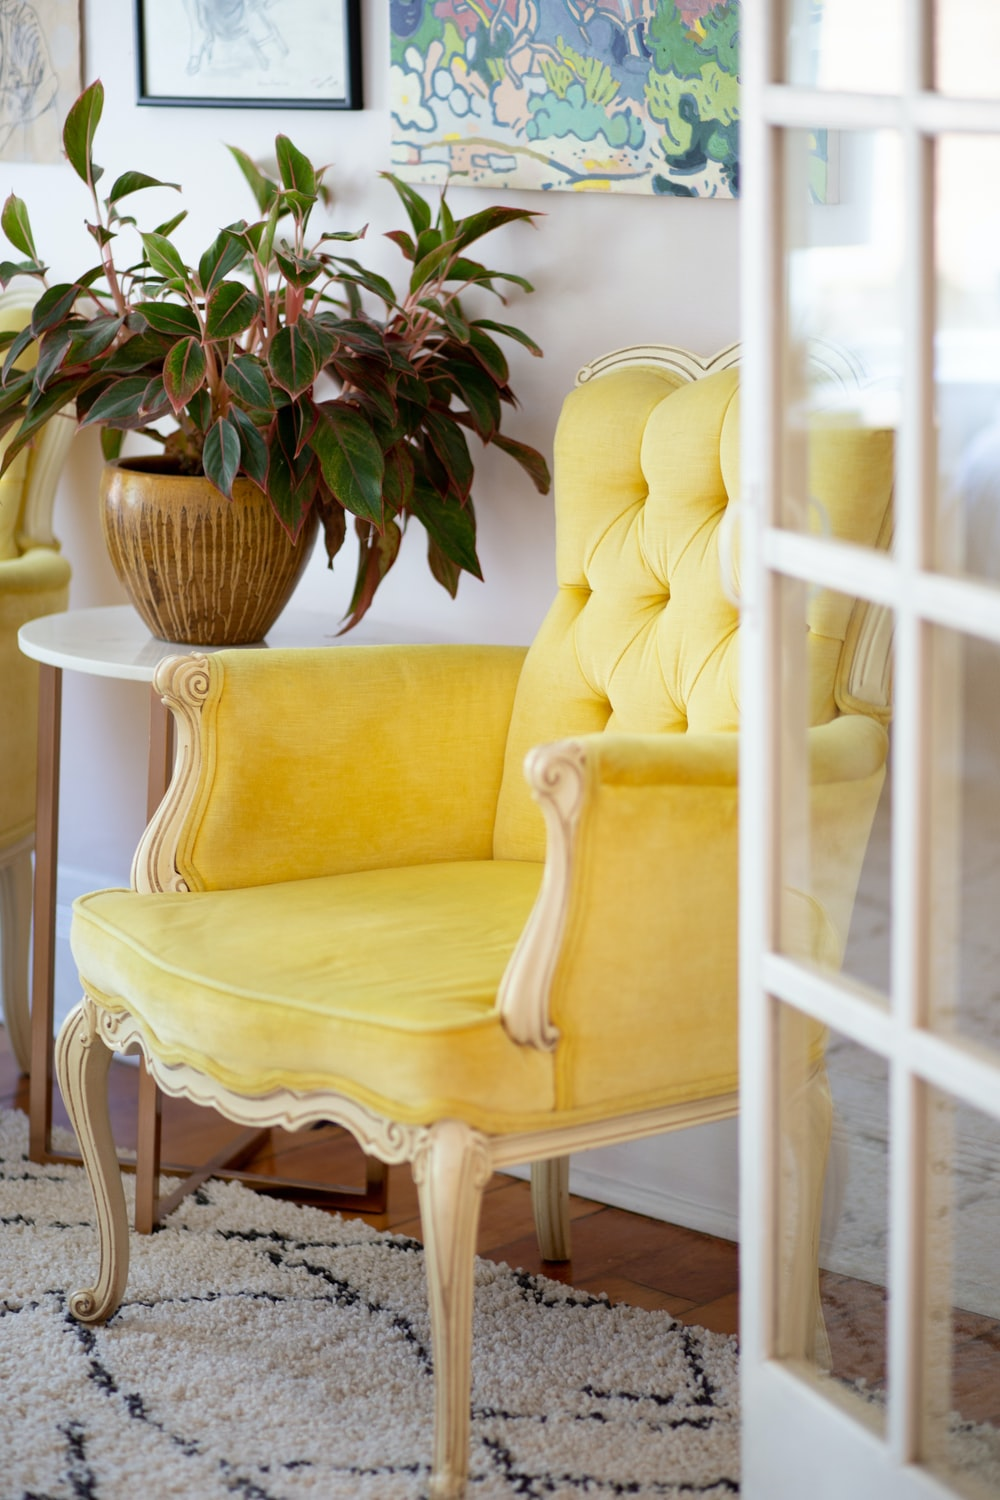 empty yellow sofa chair